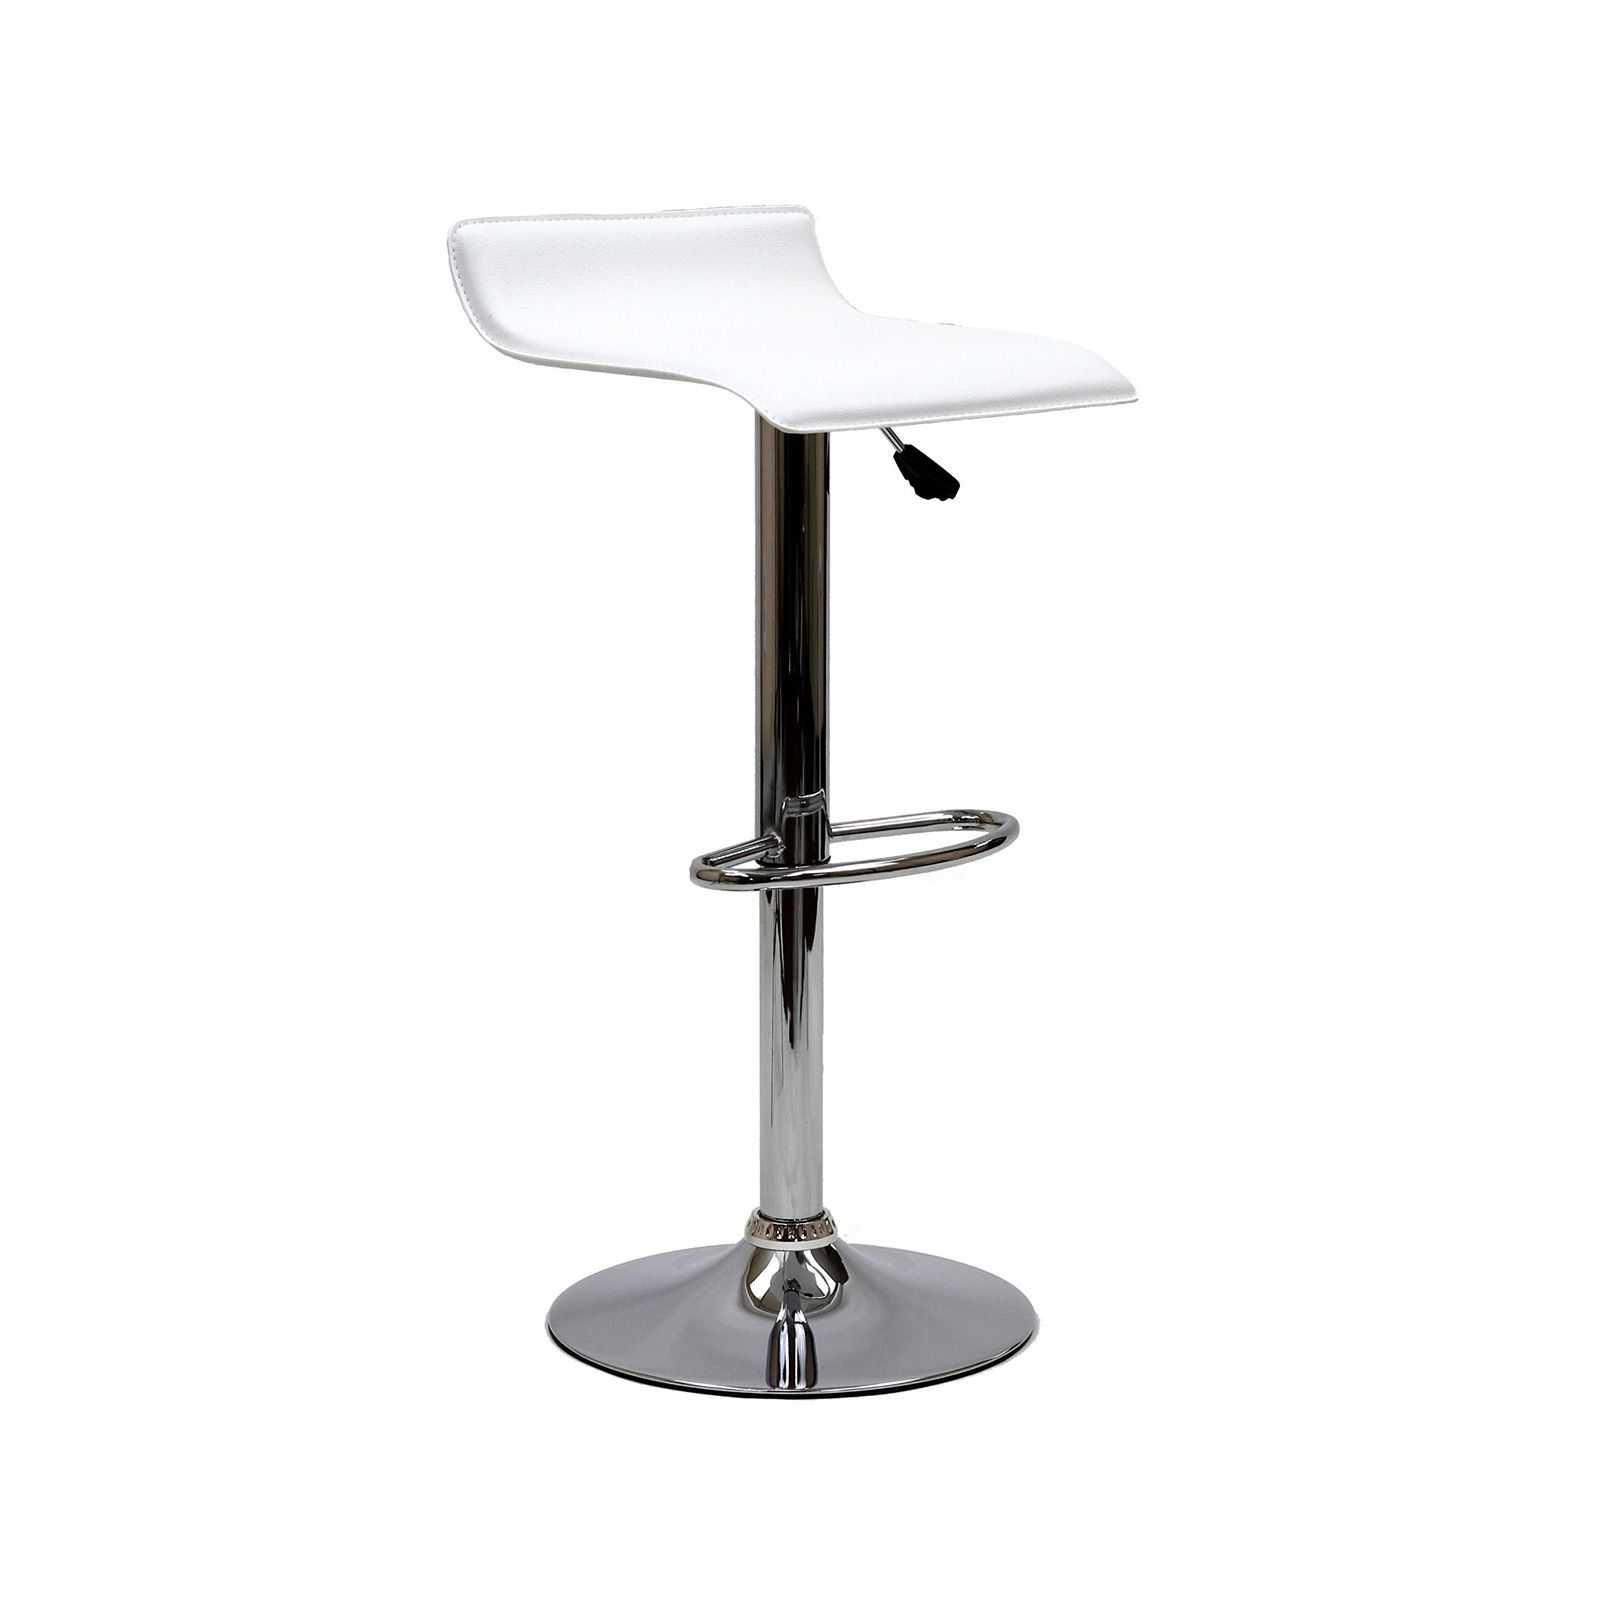 The Subtle Curved Back Of Our Kacey Bar Stool Offers A